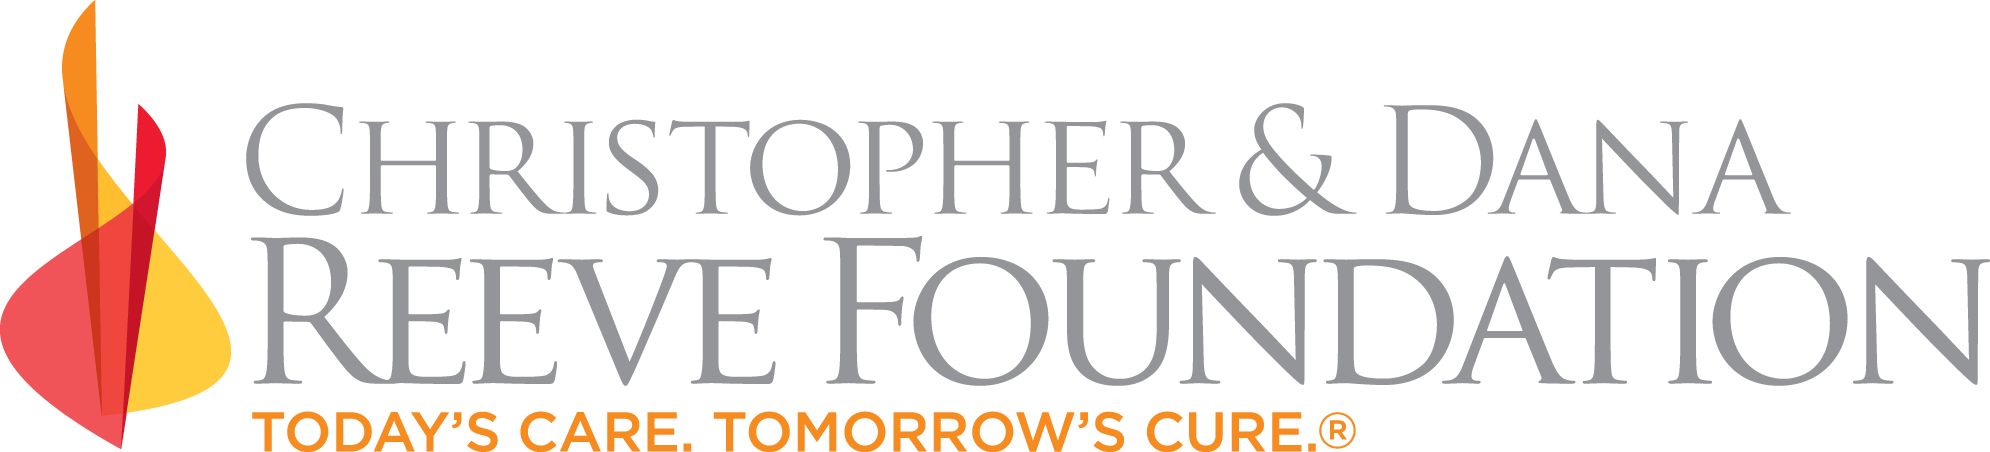 Christopher & Dana Reeve Foundation banner